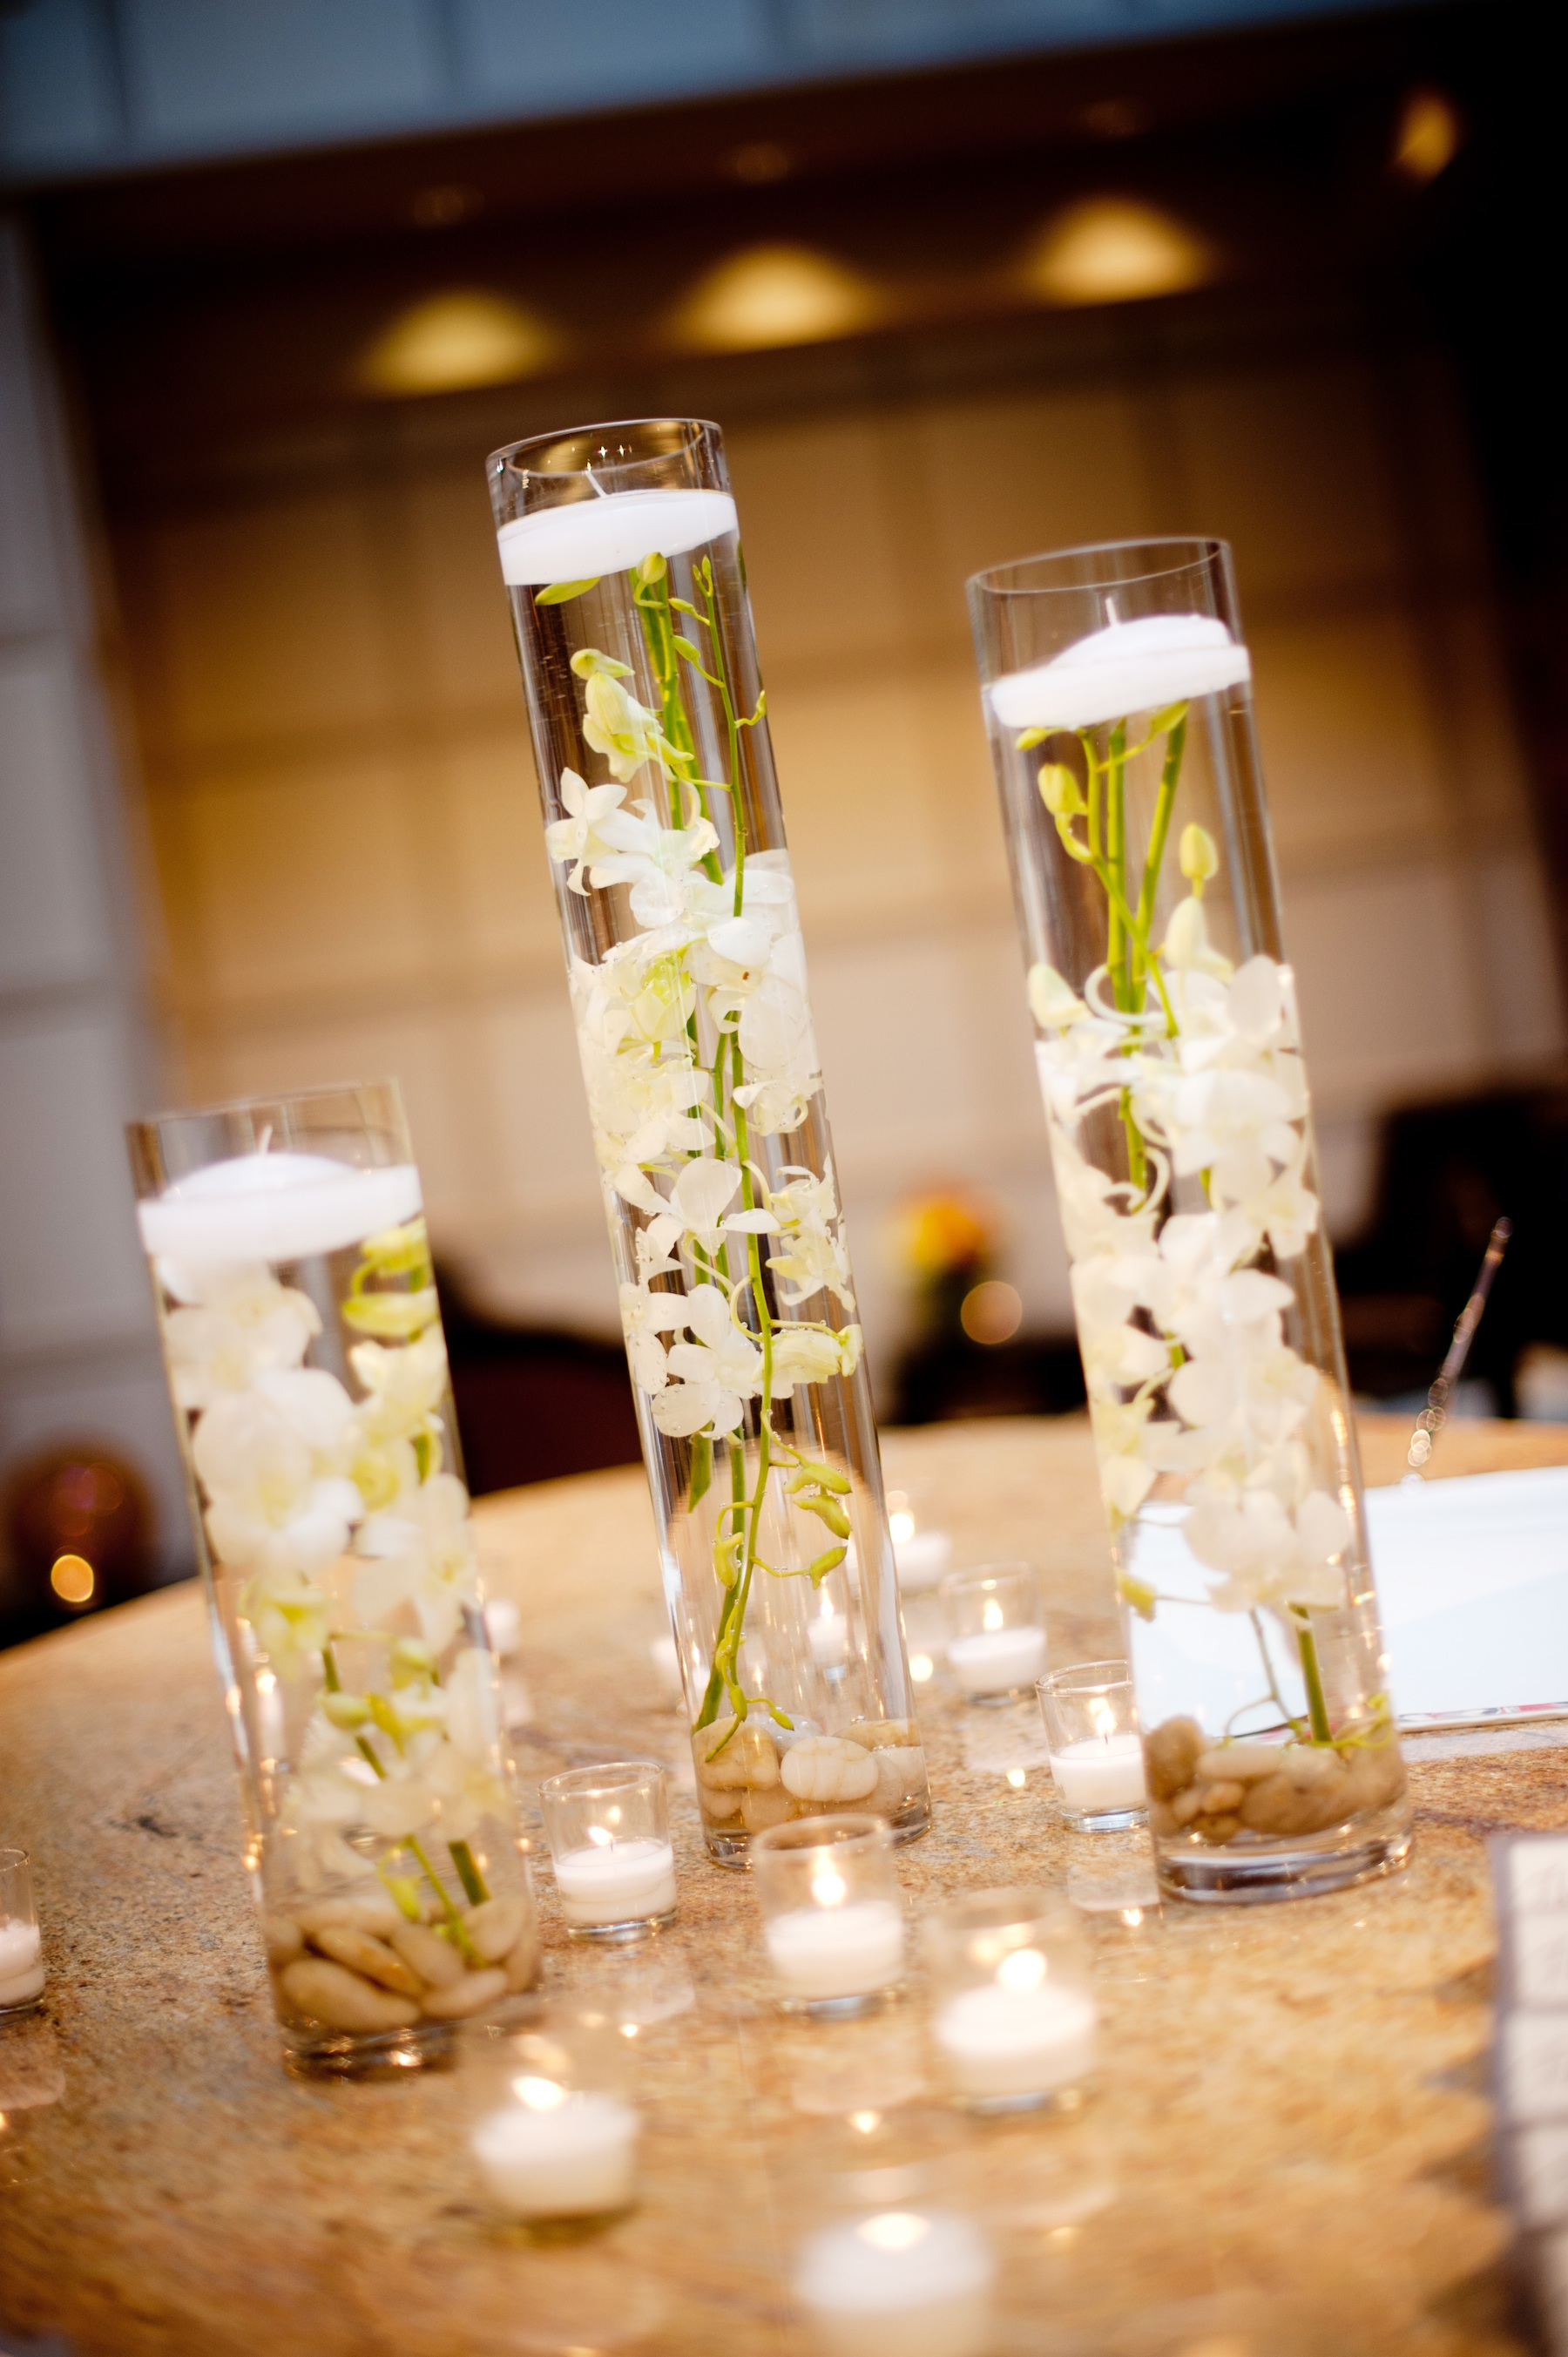 Elegant-real-wedding-with-simple-diy-details-hurricane-vases-floating-white-orchids-centerpieces.original